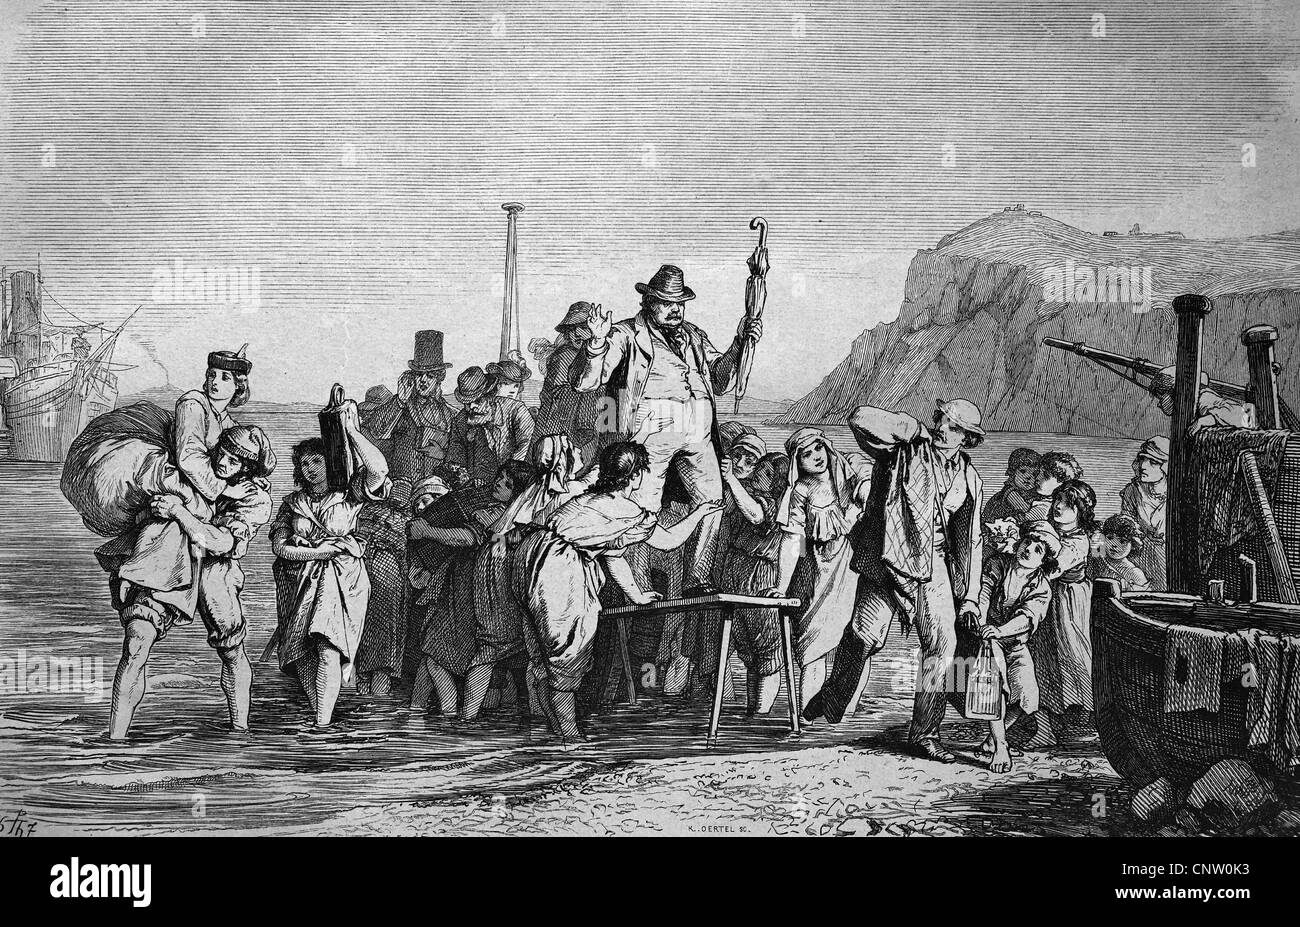 Holidaymakers arriving on the island of Capri, Italy, historical engraving, 1869 Stock Photo